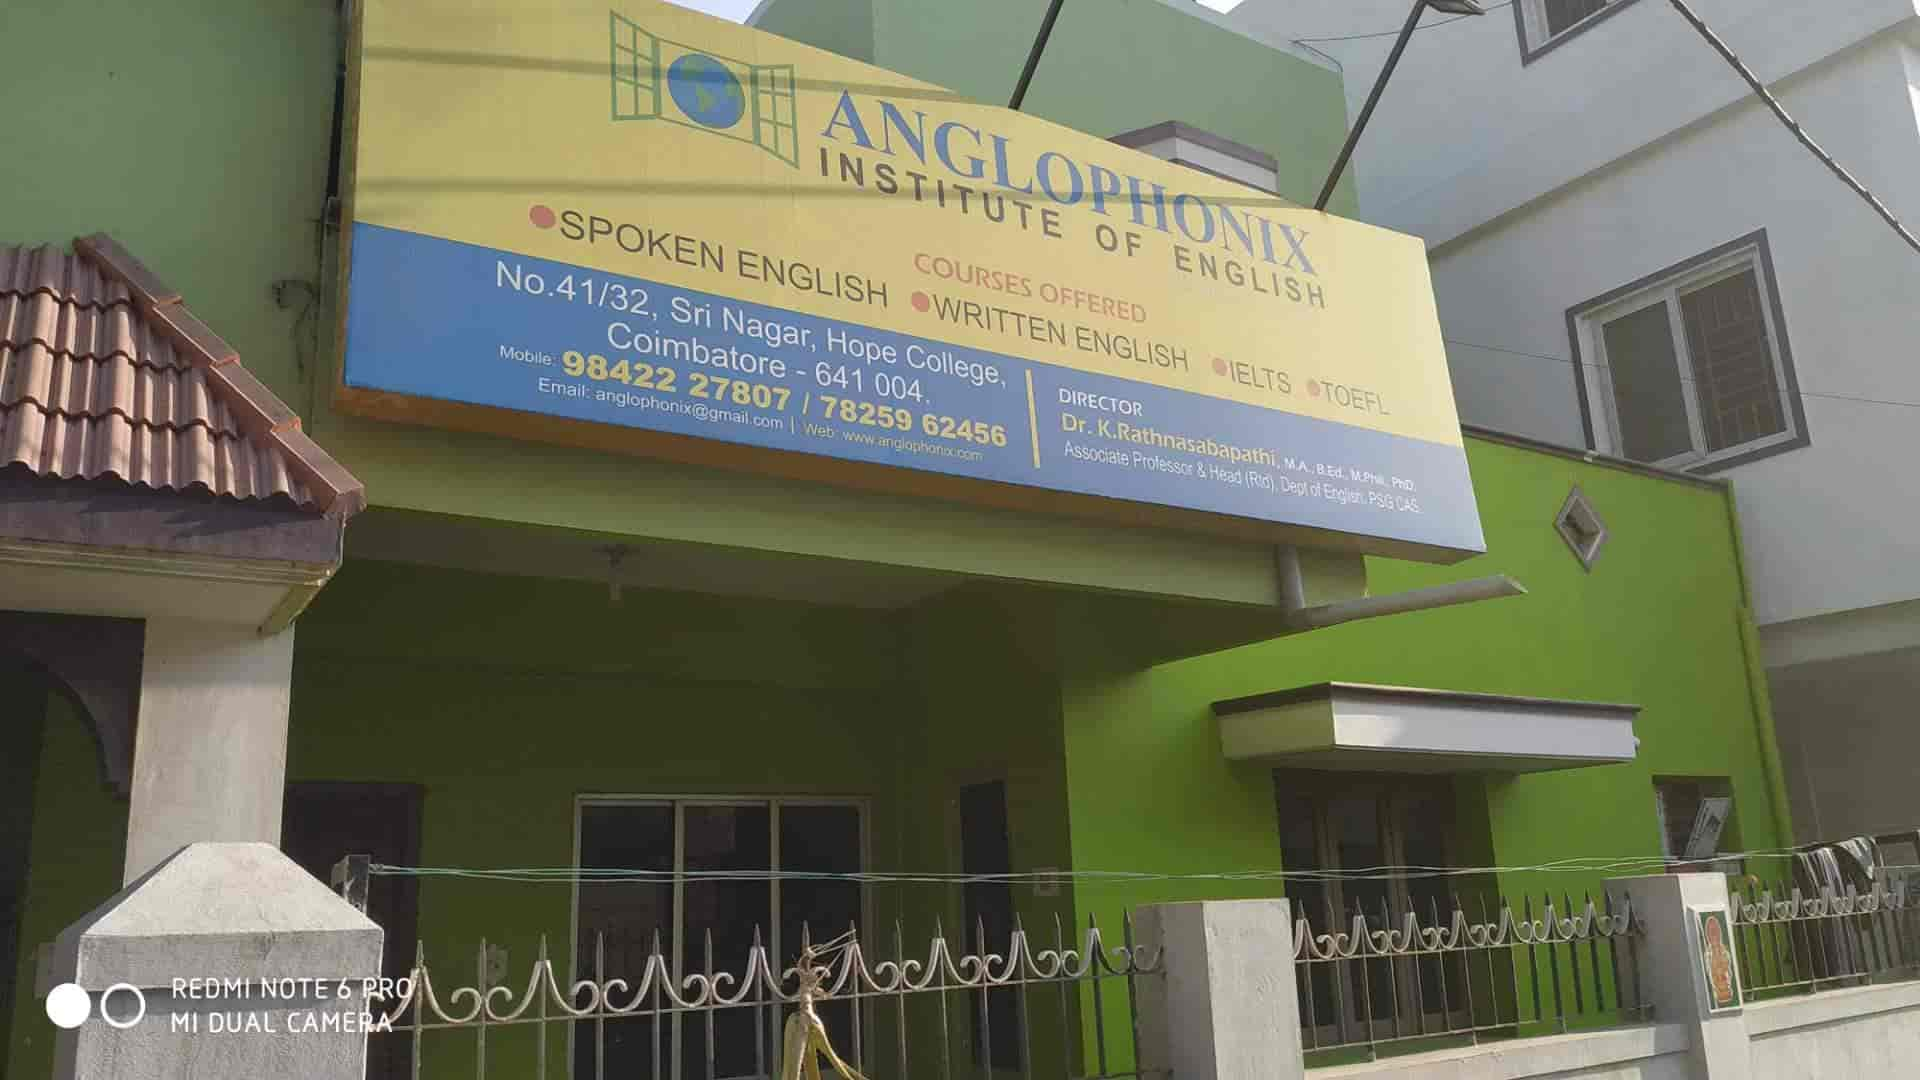 Anglophonix Institute Of English, Hopes - Language Classes